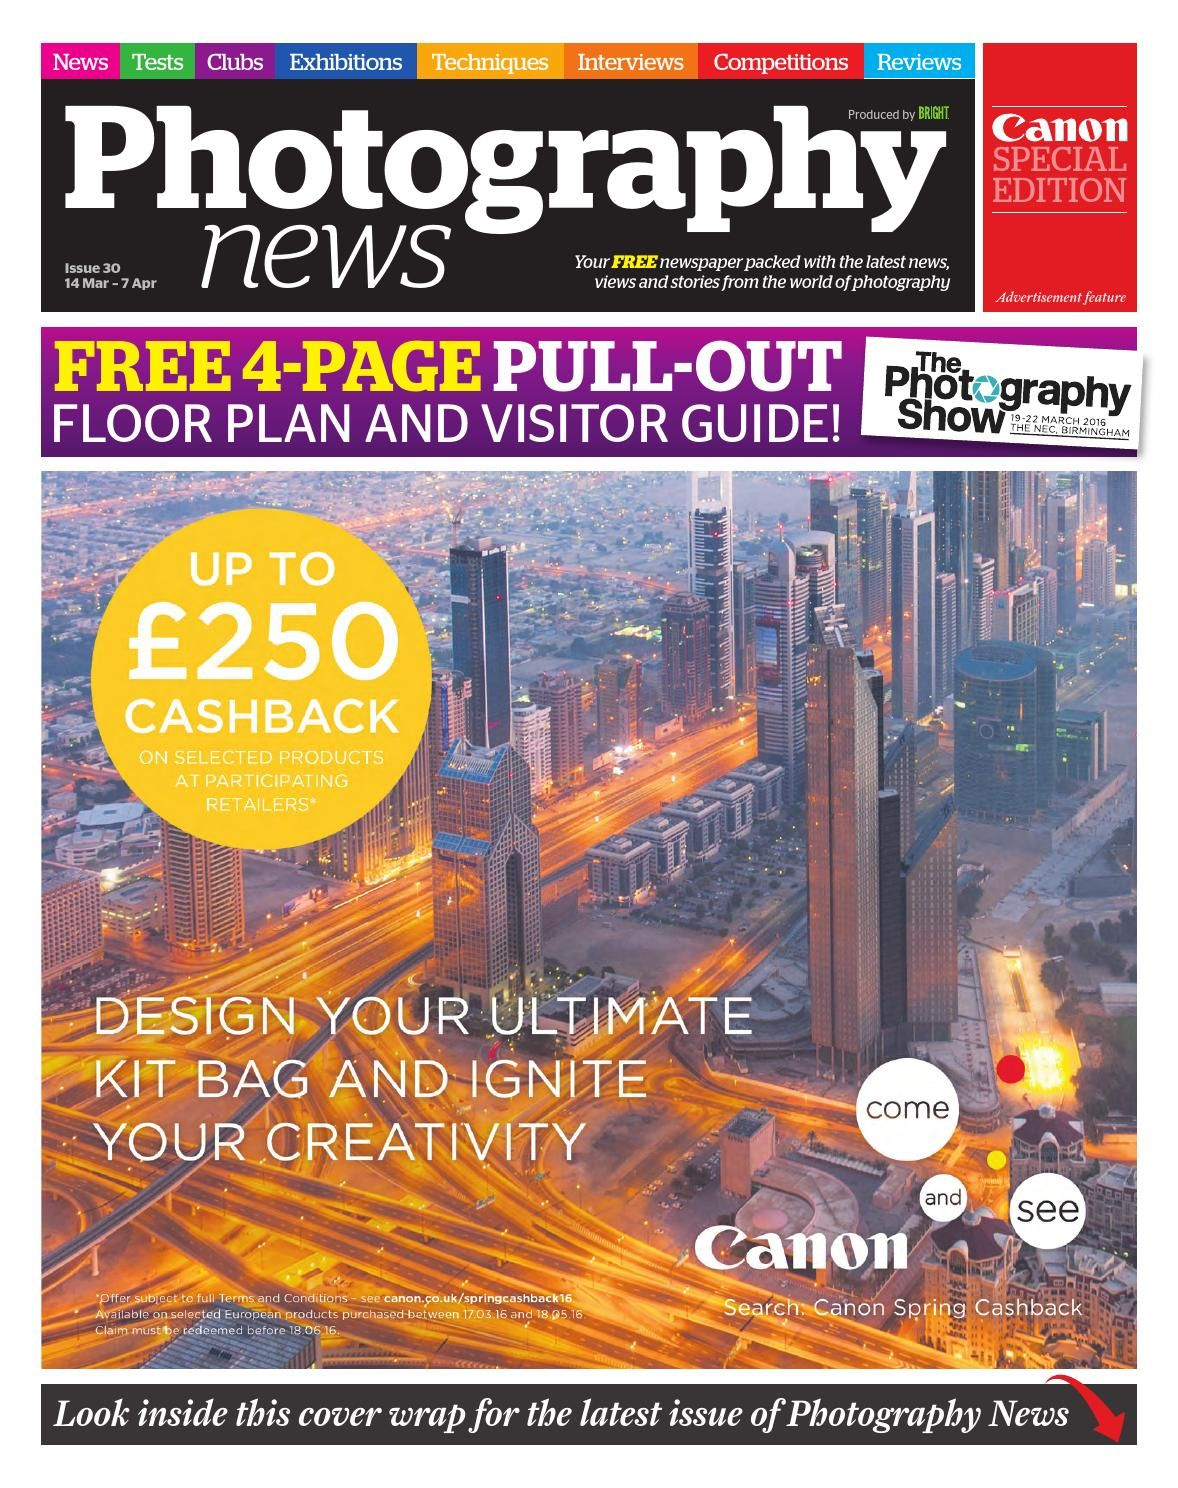 Photography News Issue 30  Your free newspaper packed with the latest news, views and stories from the world of photography.